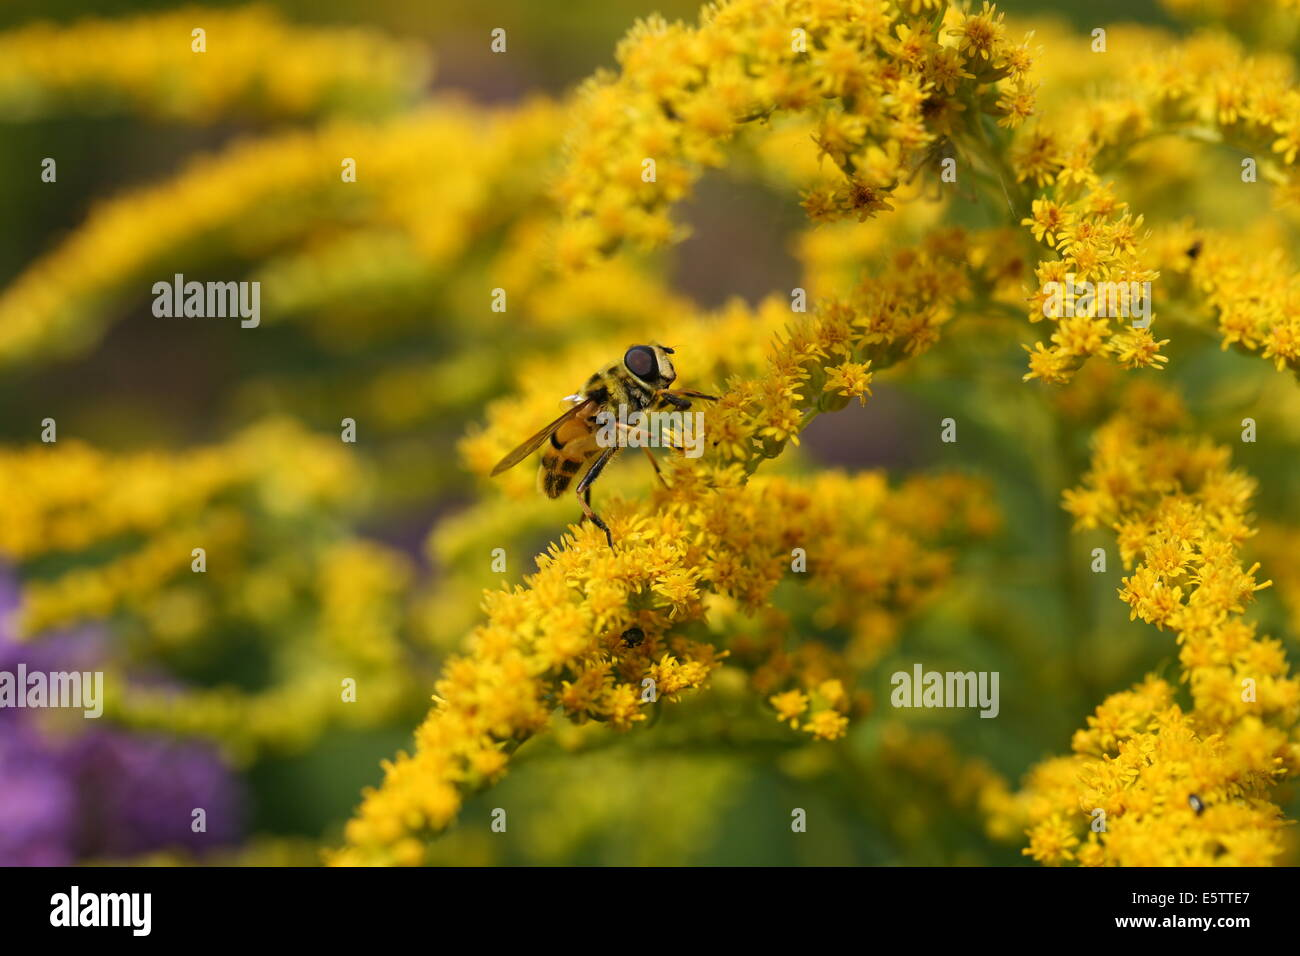 hoverfly feeding on nectar from a plant called goldenrod - Stock Image